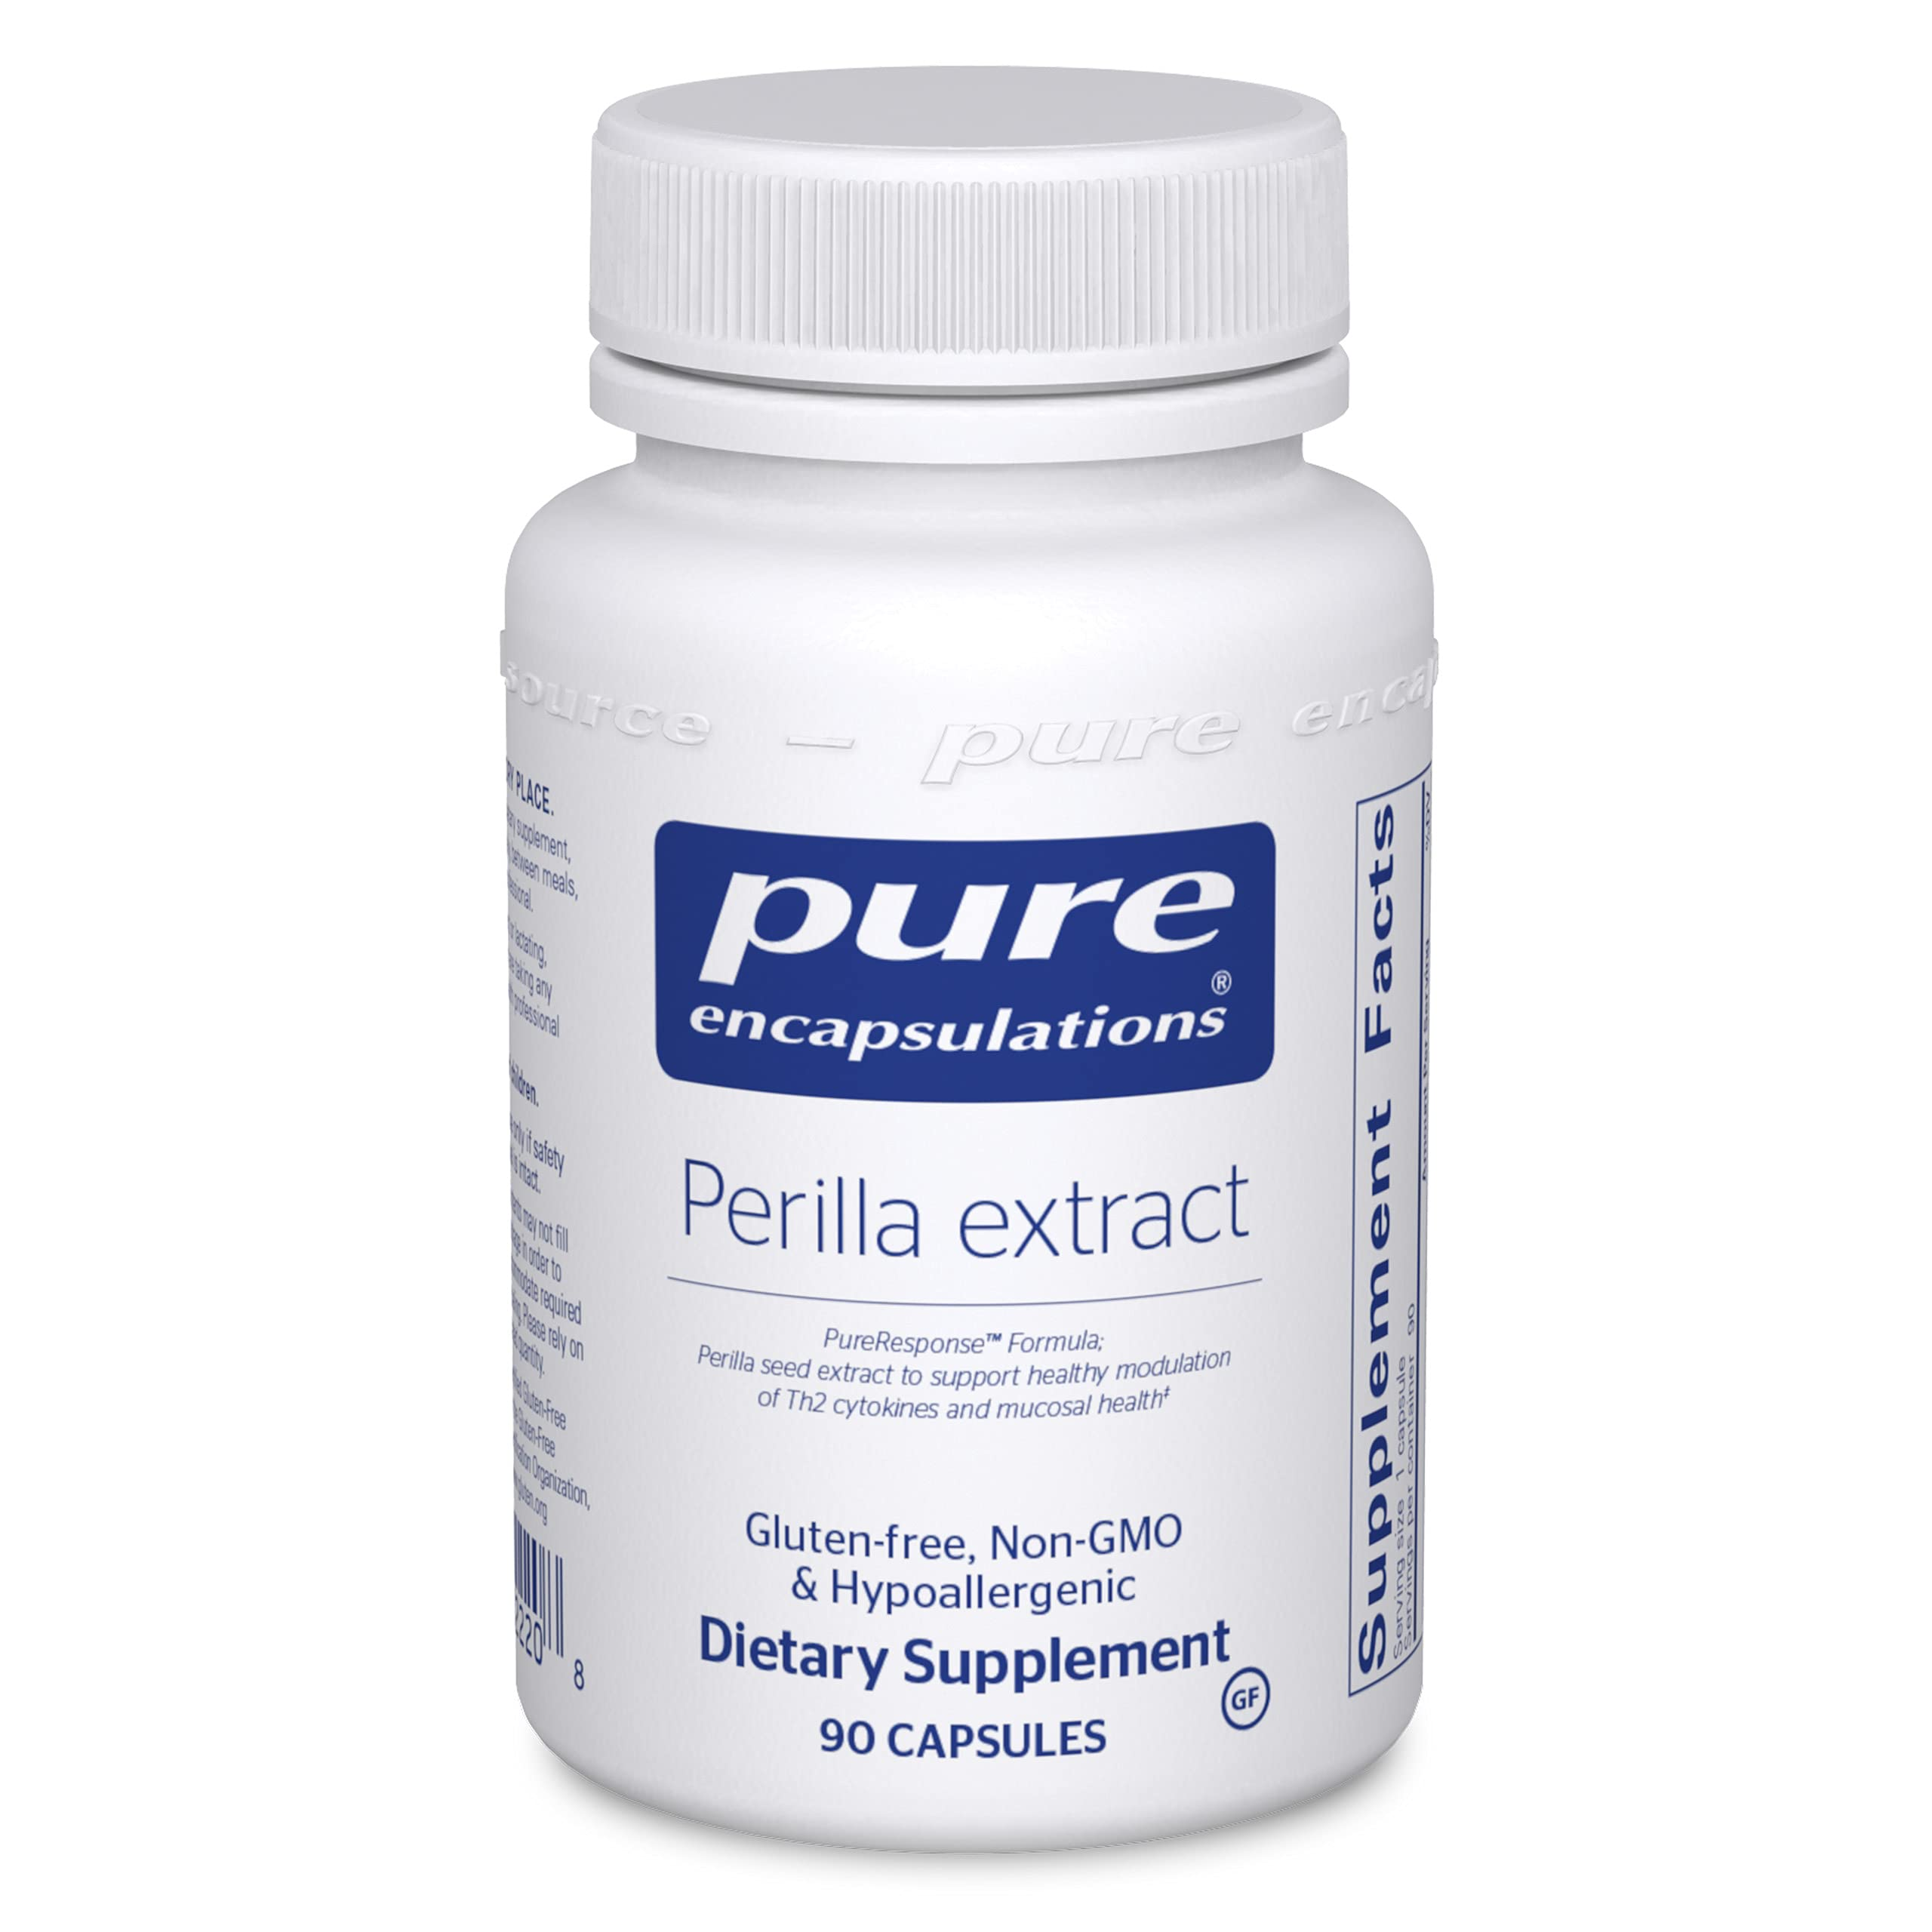 Pure Encapsulations - Perilla Extract - Support for Healthy Modulation of Th2 Cytokines and Mucosal Health* - 90 Capsules